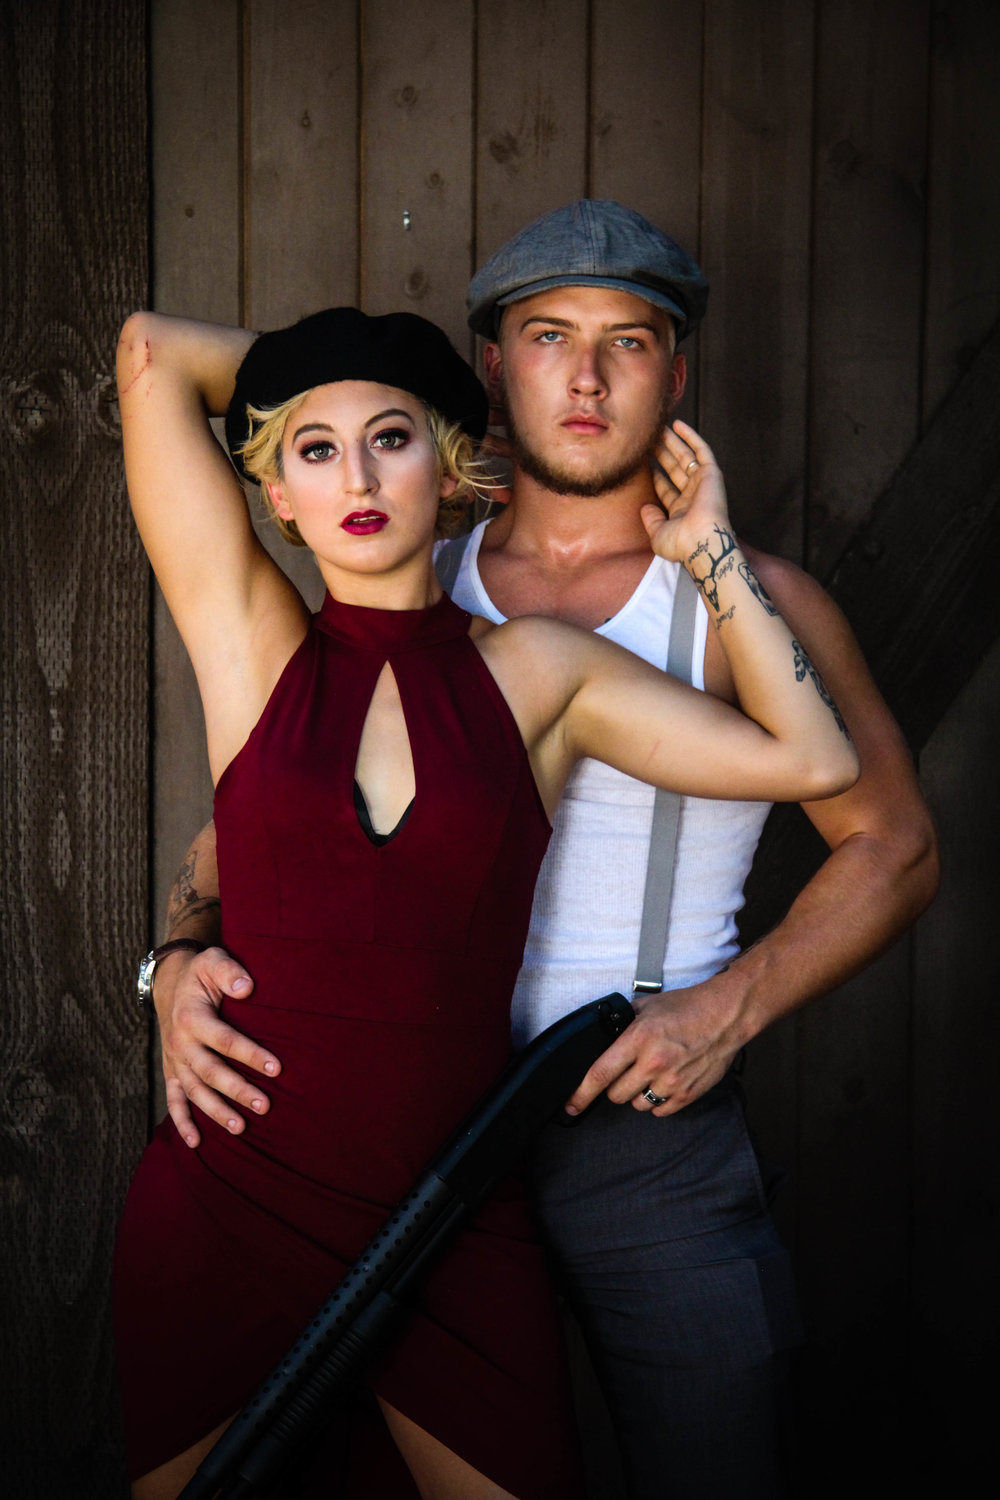 Bonnie and Clyde 11 original '.jpg